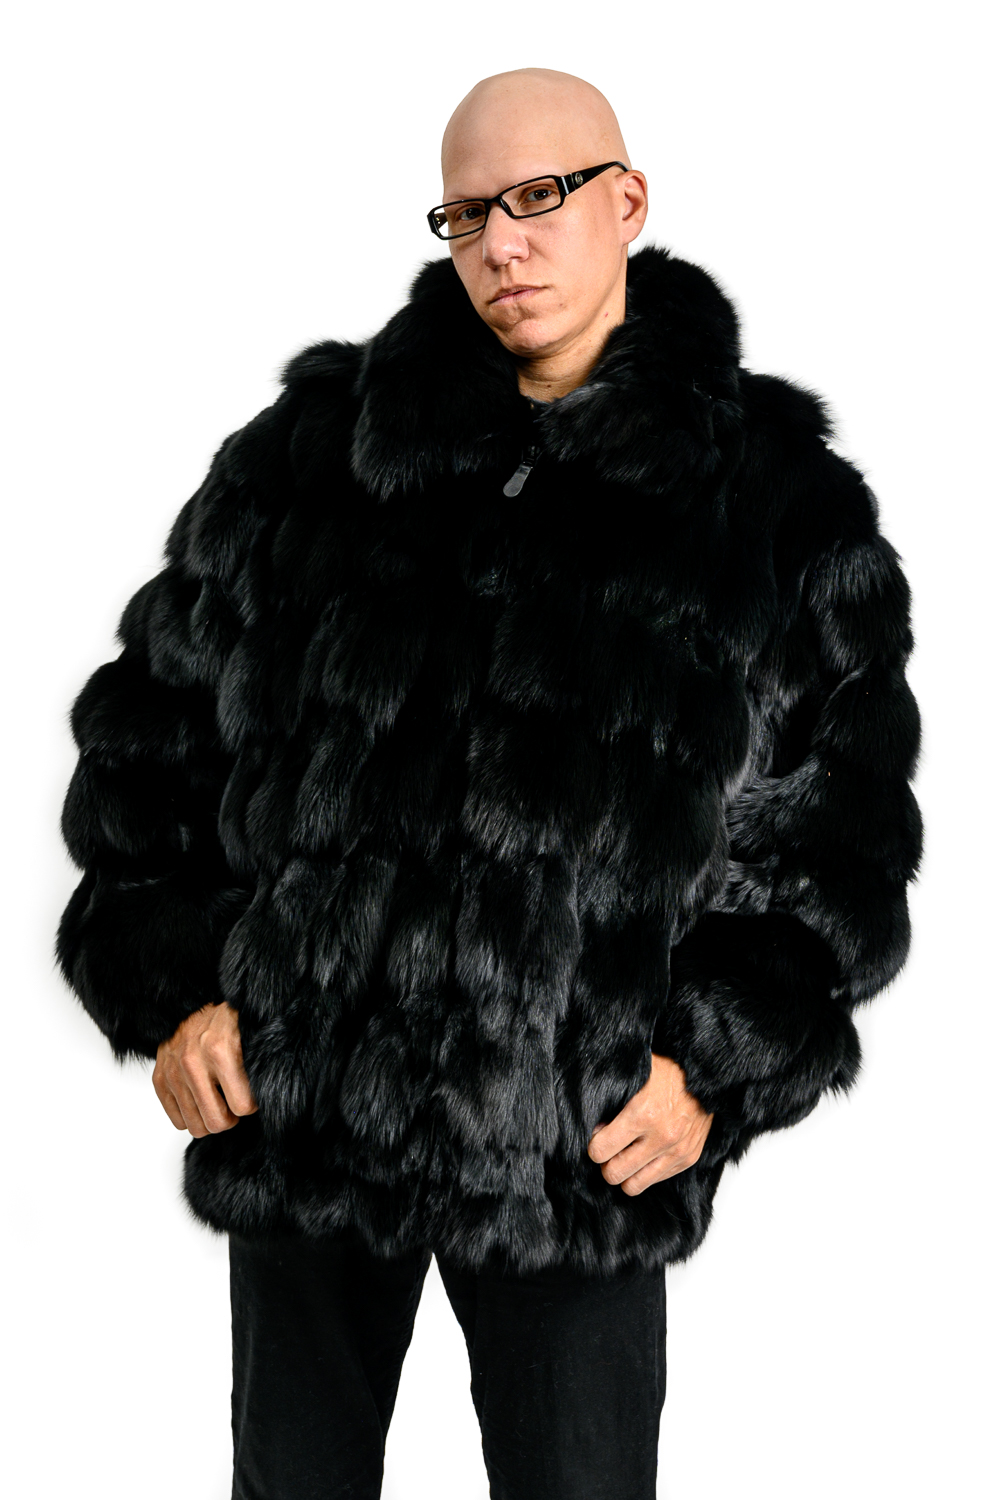 M37 2 Mans Black Fox Fur Sections Jacket